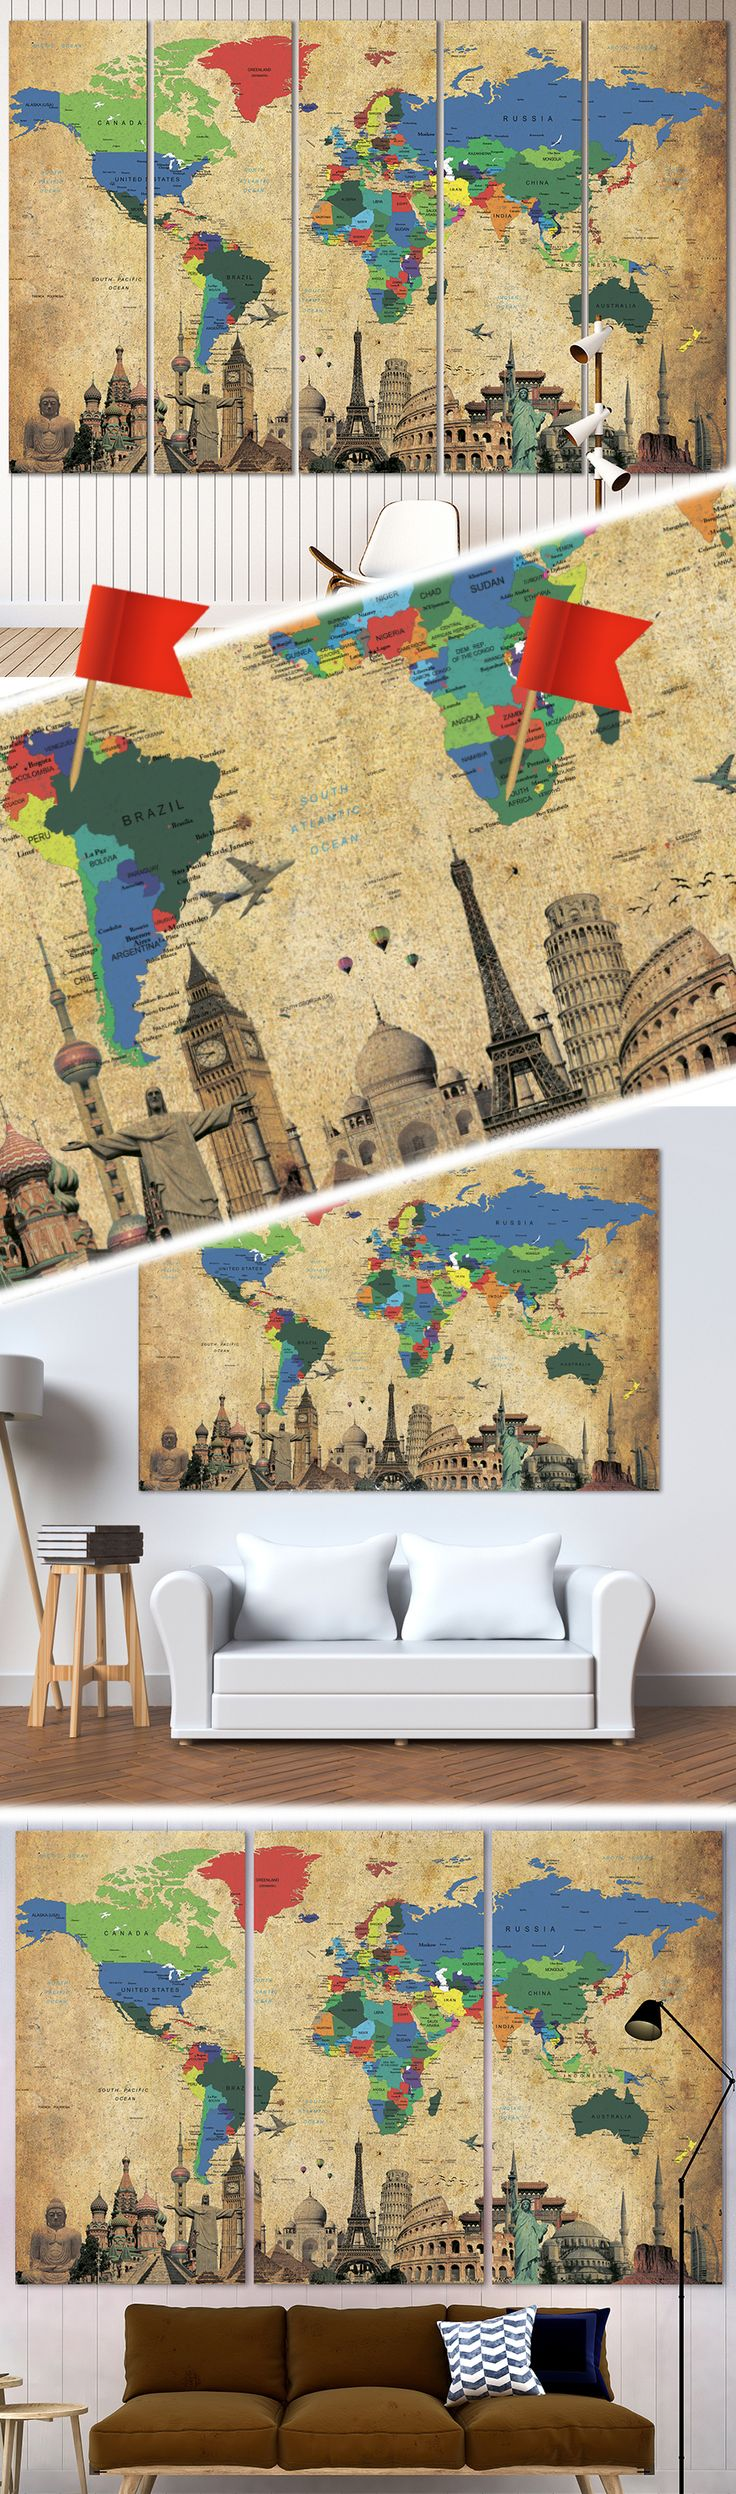 170 best World & Country Maps images on Pinterest | Country maps ...